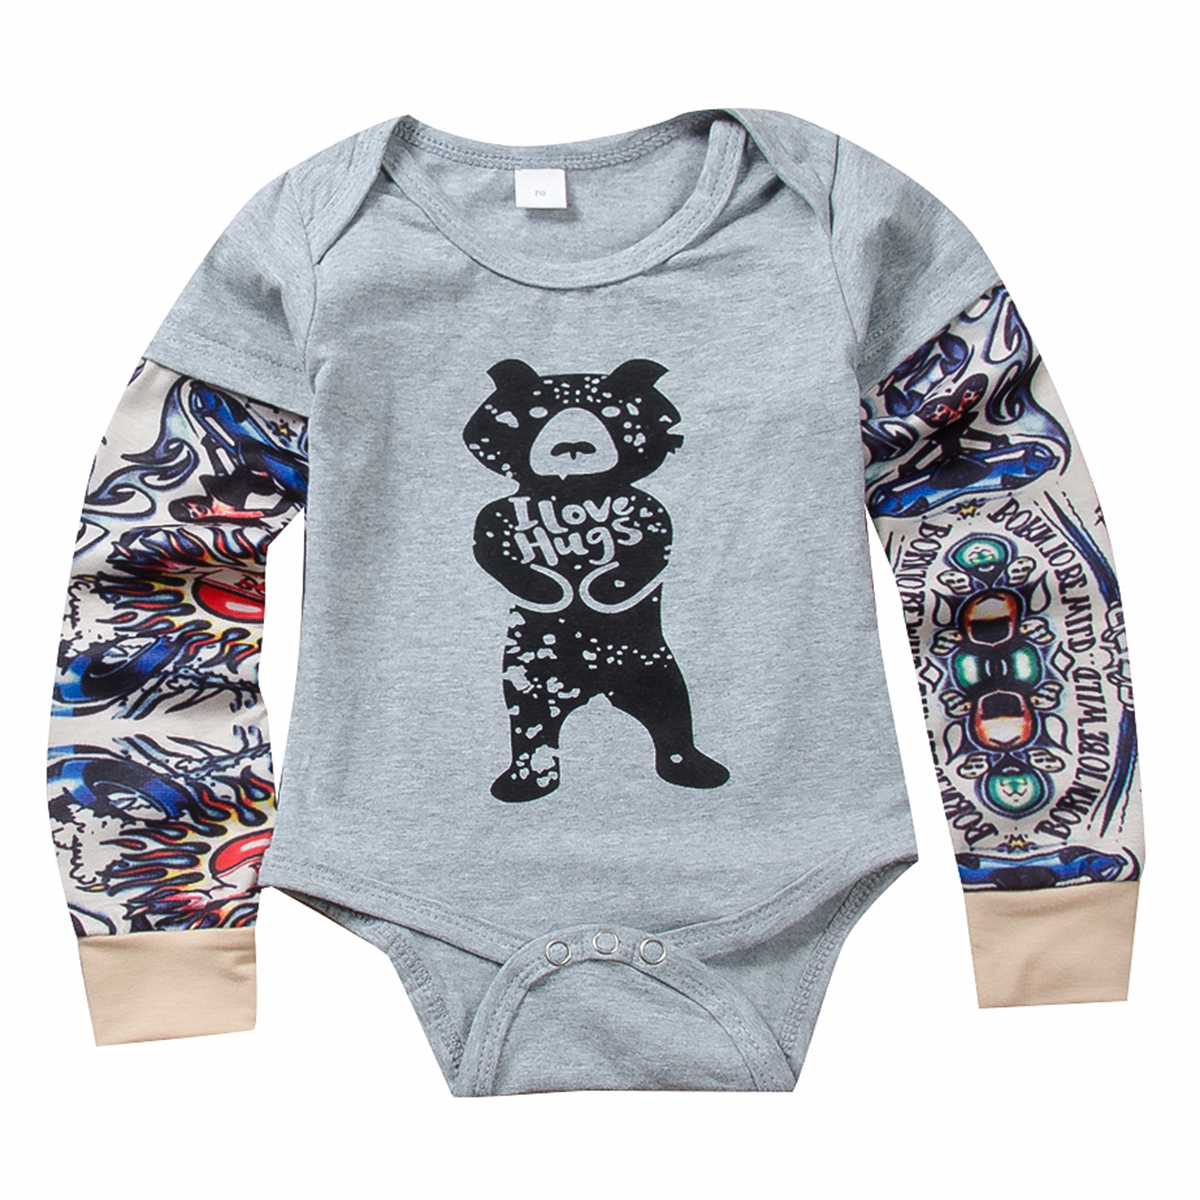 Infant Bear Costume | Infant Baby Romper Girls Boys L Love Hugs Cartoon Bear Costume Clothes For Kids Long Sleeve Letter Tattoo Print Jumpsuit Romper